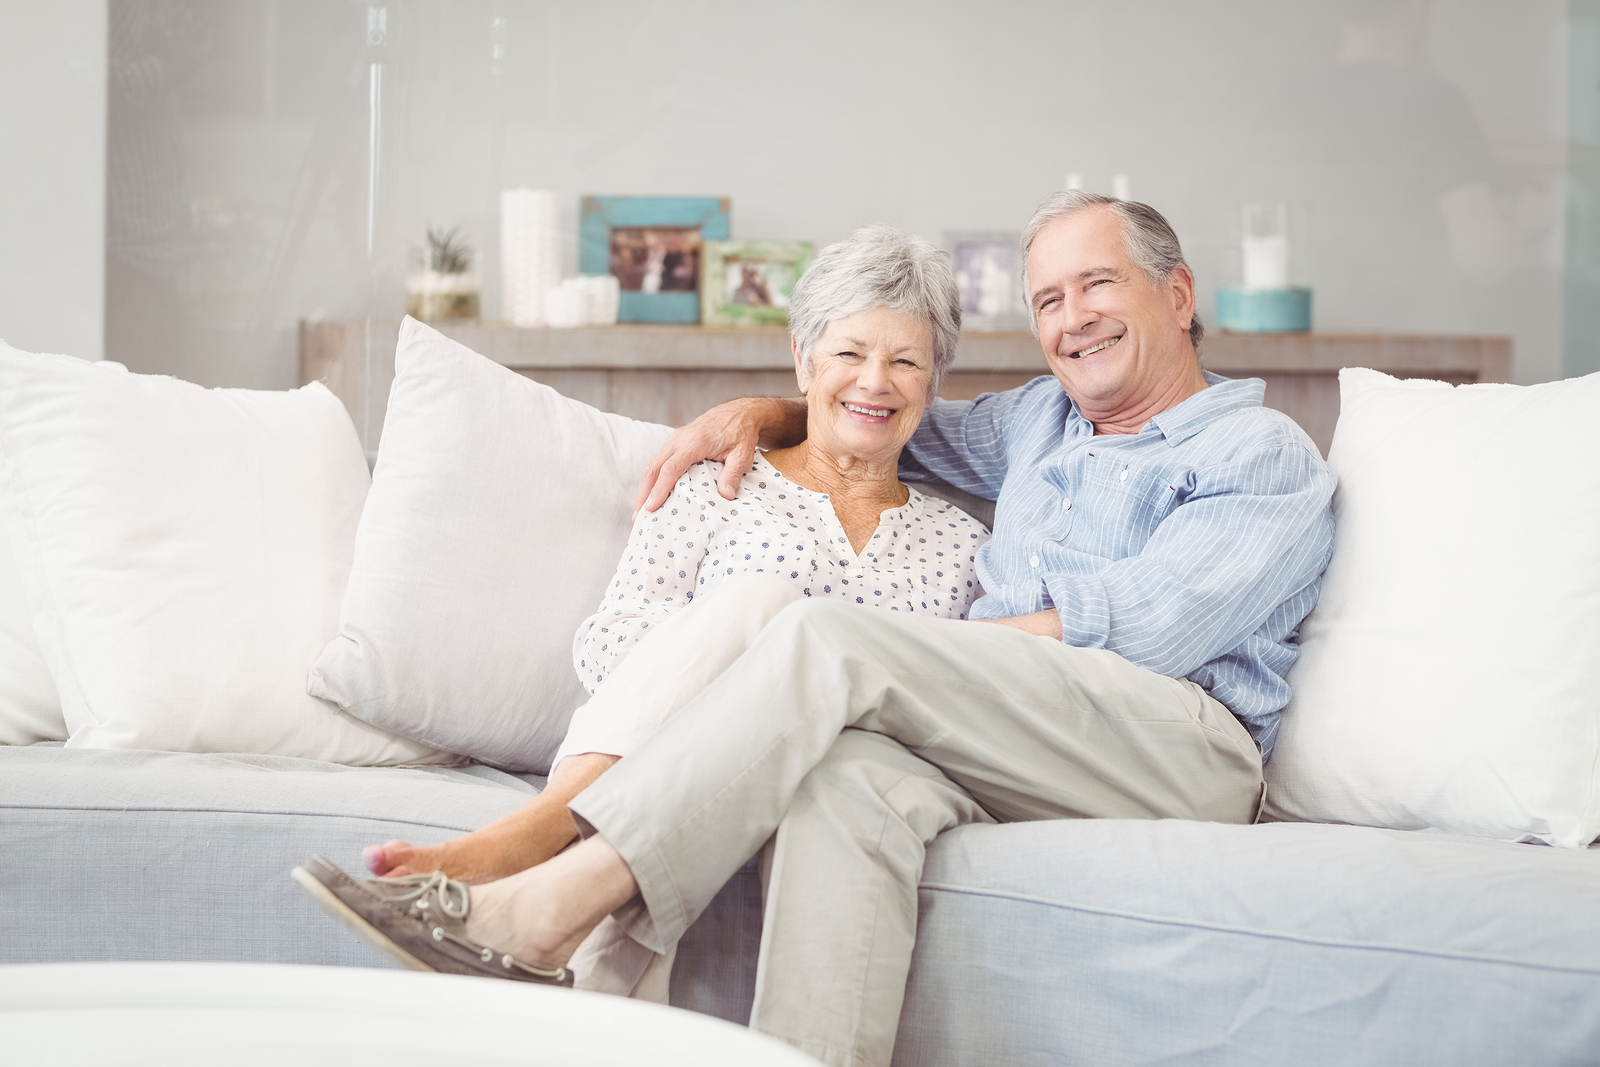 Fall Prevention: How to Keep Your Home Safe